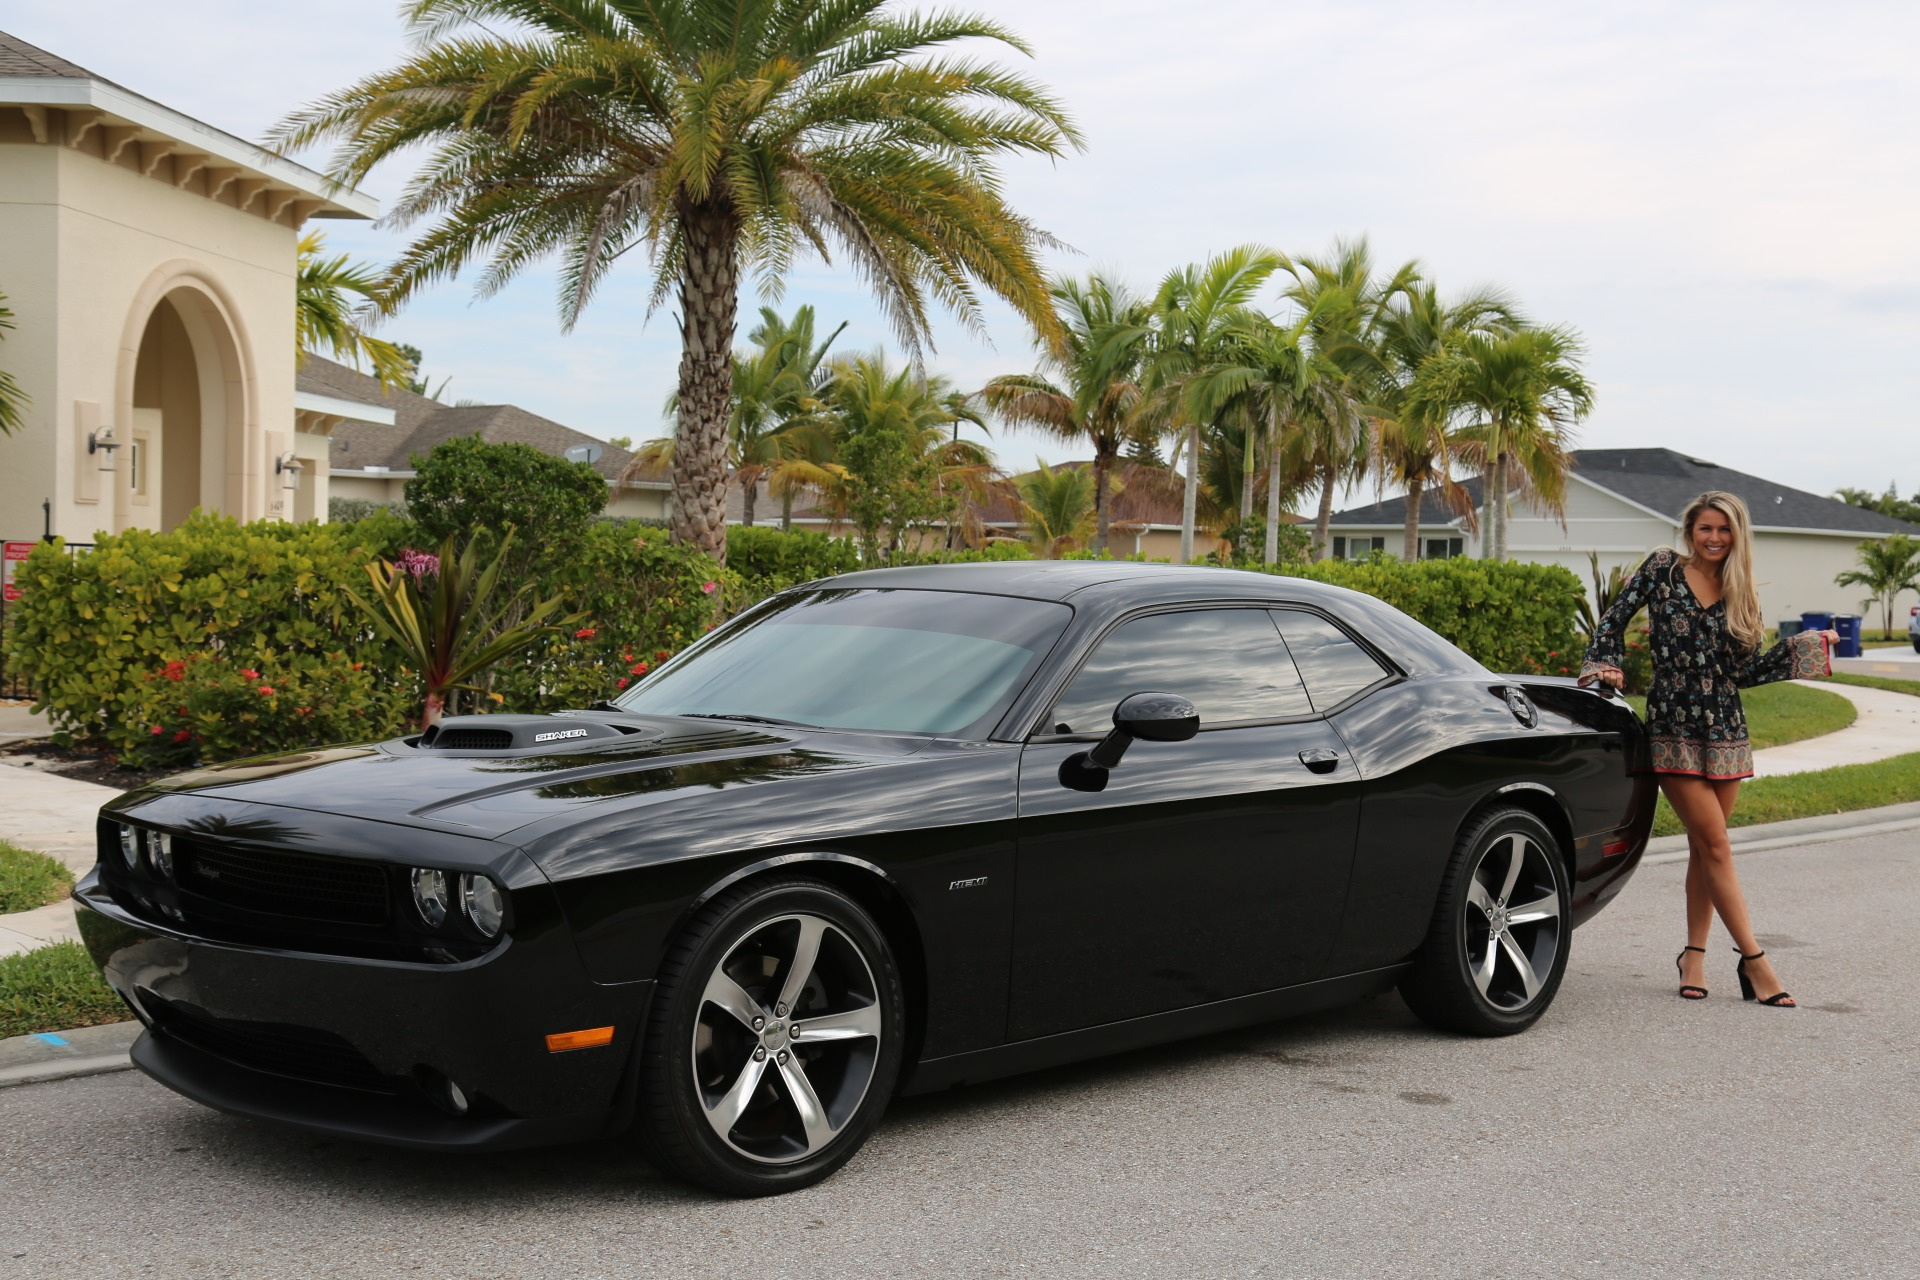 Used 2014 Dodge Challenger R/T Shaker Package for sale $25,800 at Muscle Cars for Sale Inc. in Fort Myers FL 33912 4